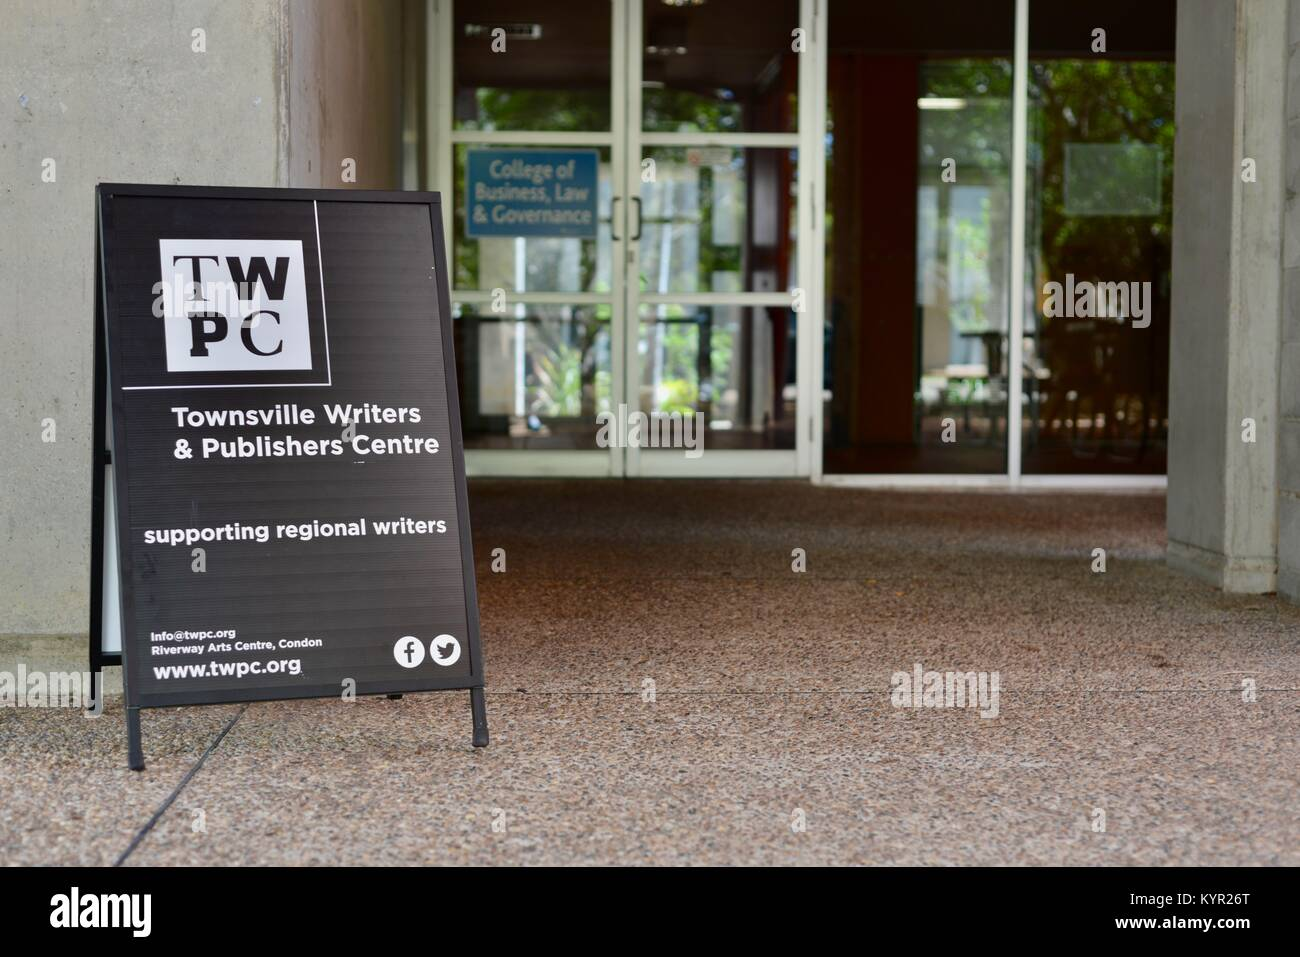 Townsville writers and publishers centre, supporting regional writers, www.twpc.org, James Cook University, Townsville, - Stock Image